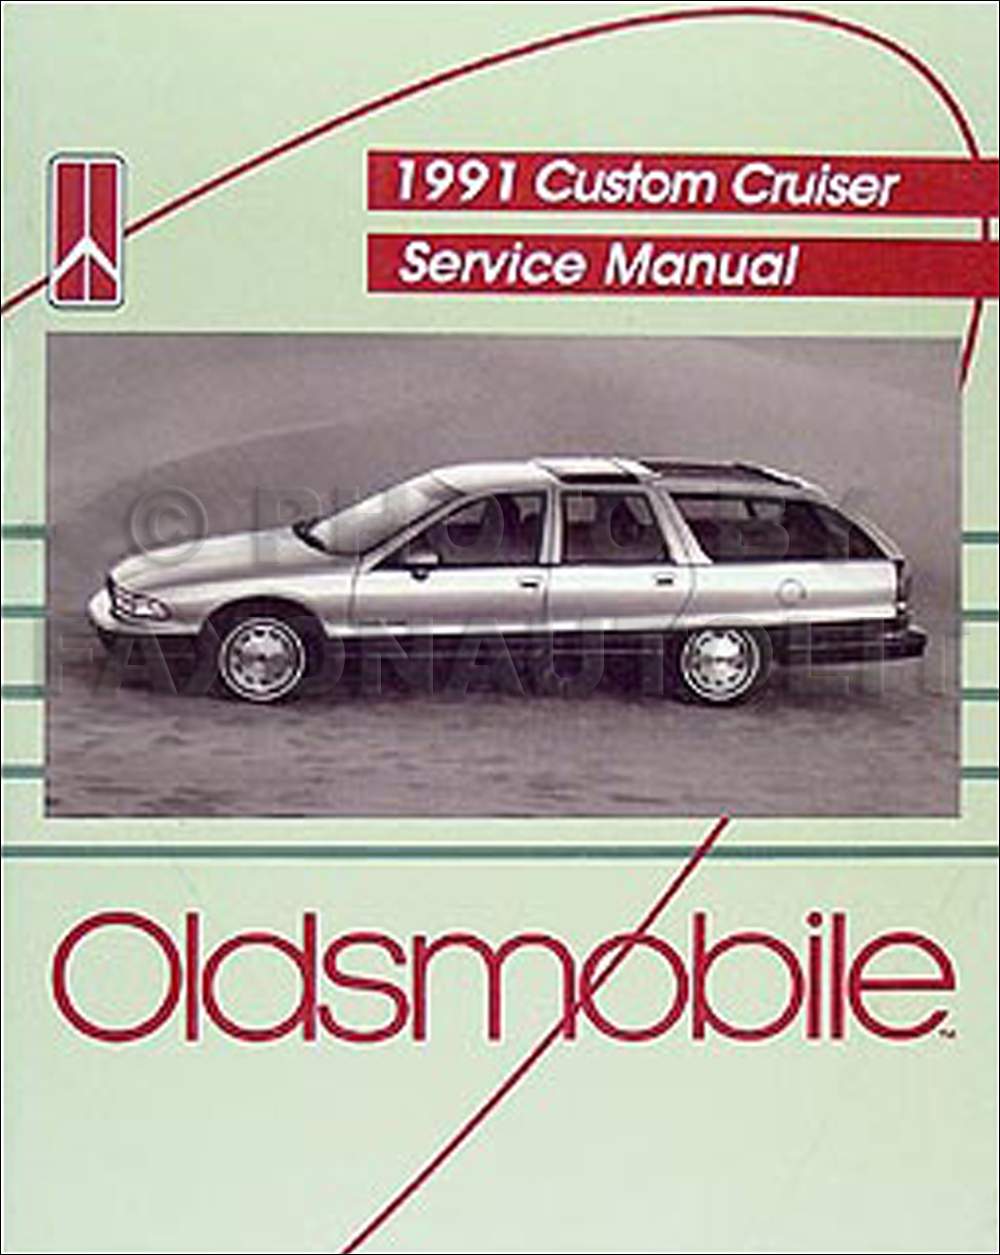 1991 Oldsmobile Custom Cruiser Repair Manual Original